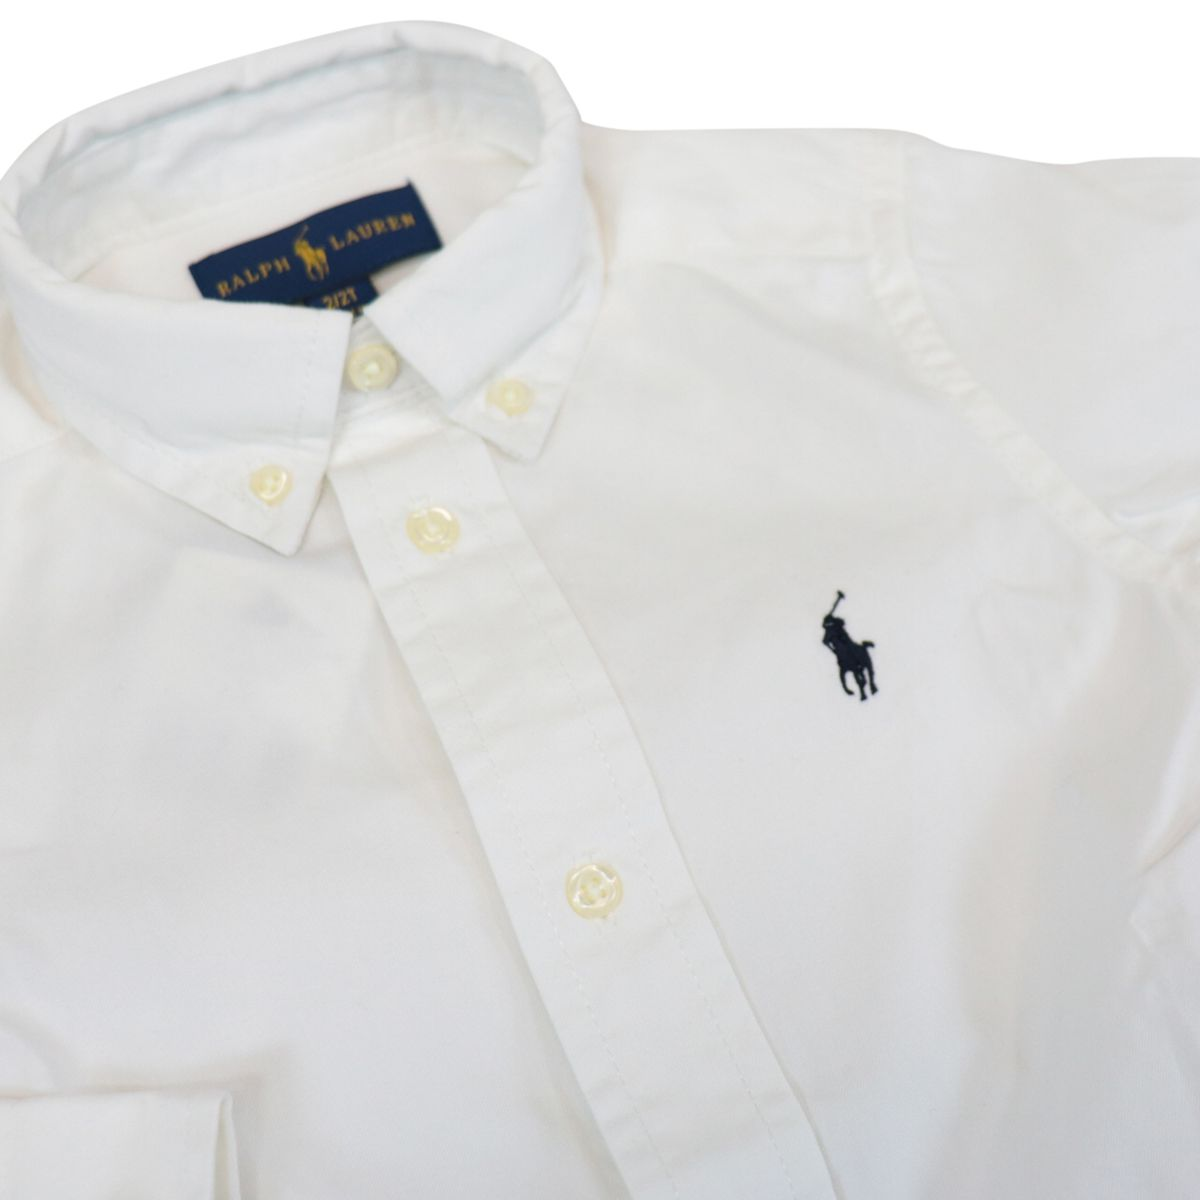 Long-sleeved shirt in custom fit cotton with button-down collar White Polo Ralph Lauren